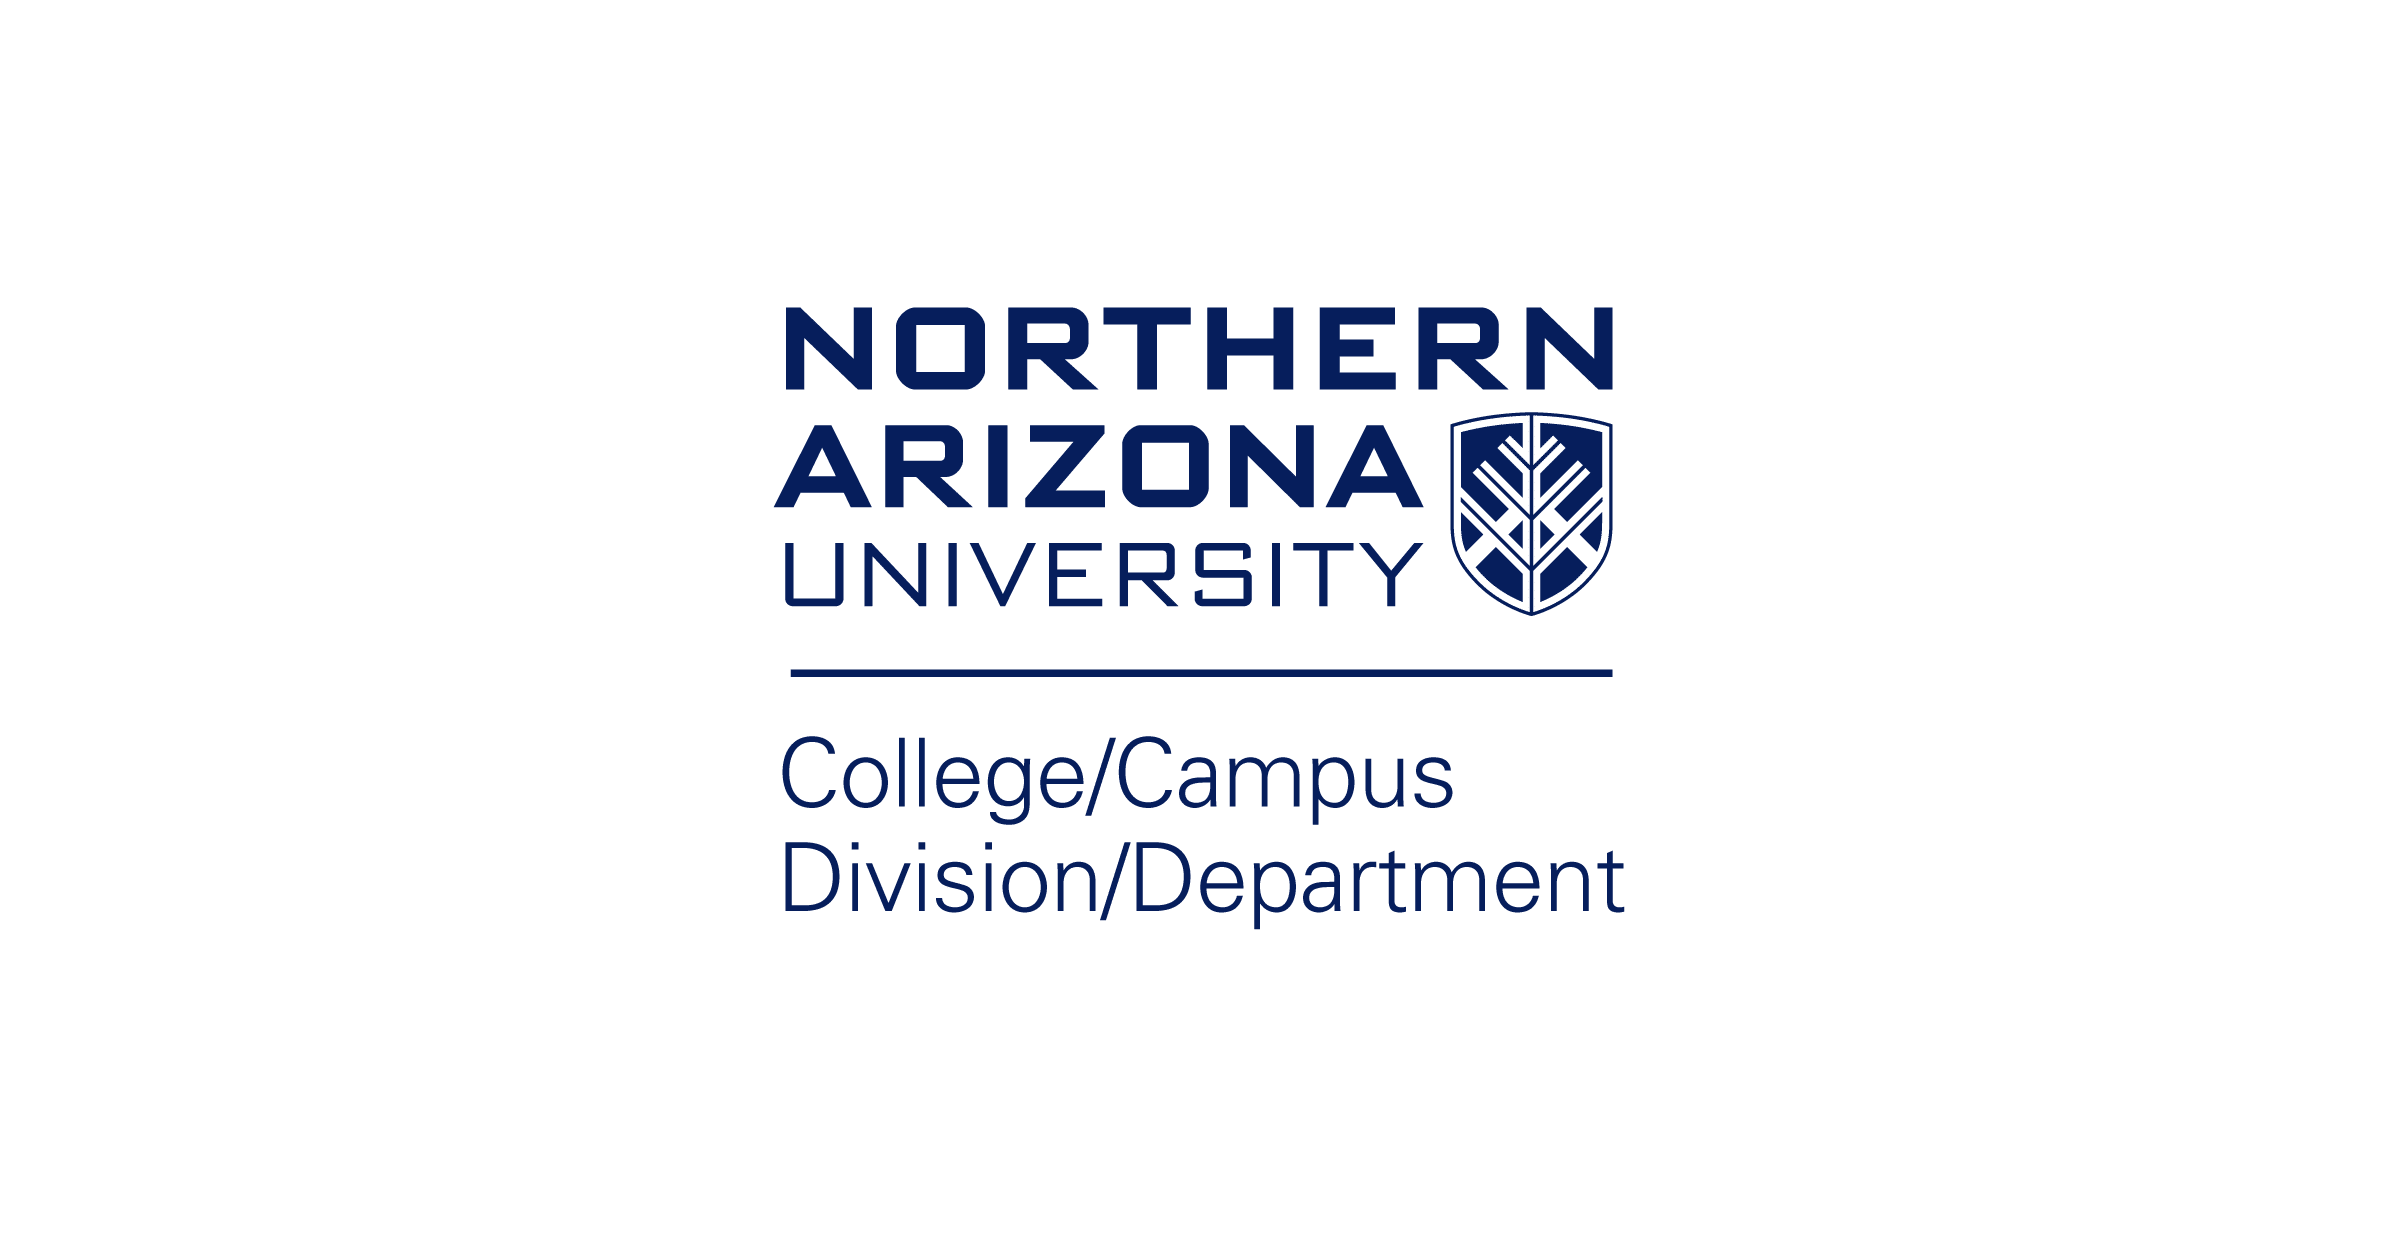 The Northern Arizona University vertical college, campus, division, and non-academic department logo. The logo is divided by a blue horizontal line. On the top, the N A U logo is stacked vertically with the N A U shield in the bottom right. On the bottom, the college, campus, division, and department text are separated by forward slashes and stacked vertically. The text is blue over a white background.